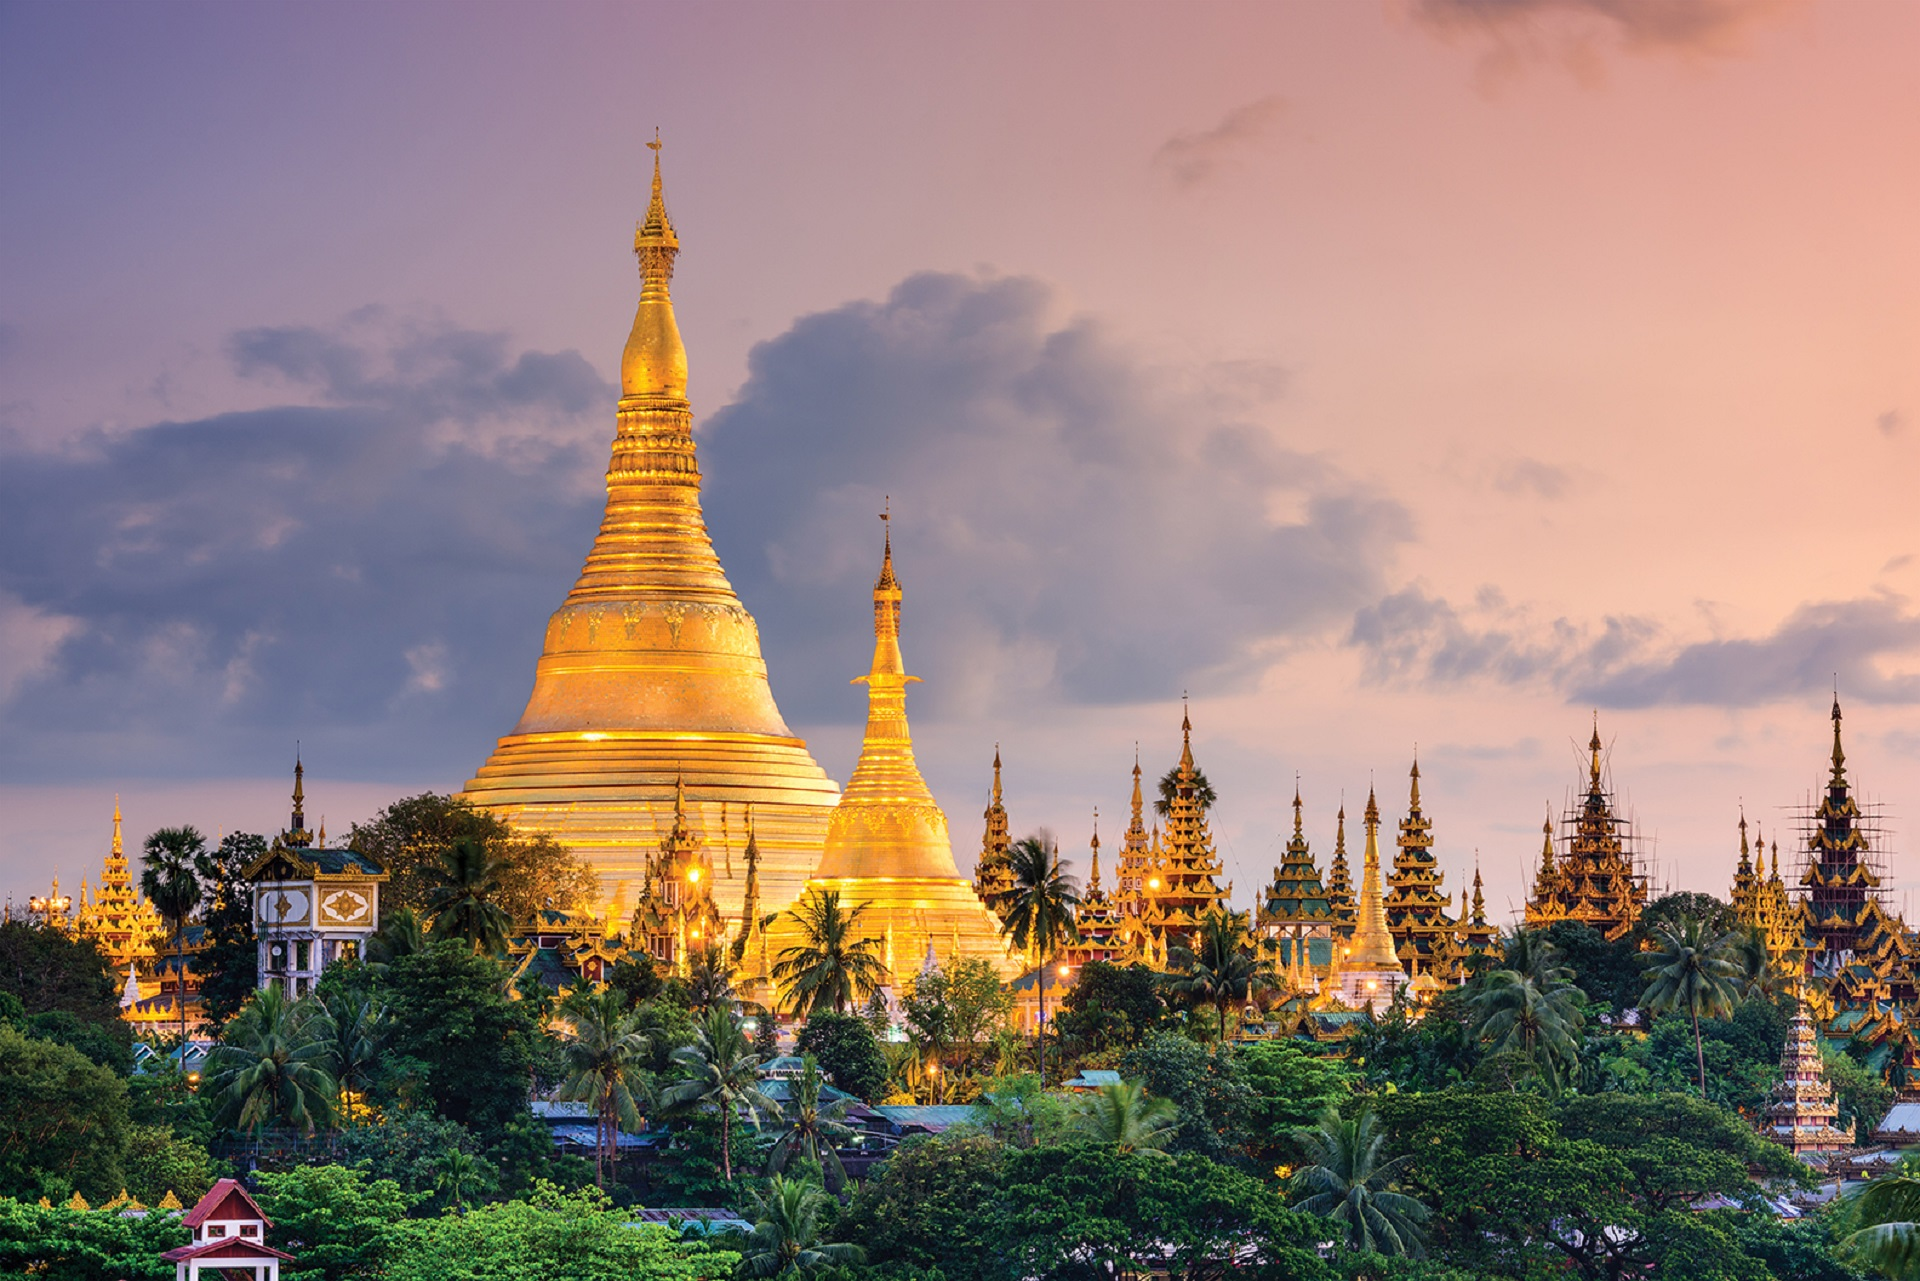 Yangon, Myanmar view of Shwedagon Pagoda _328520822